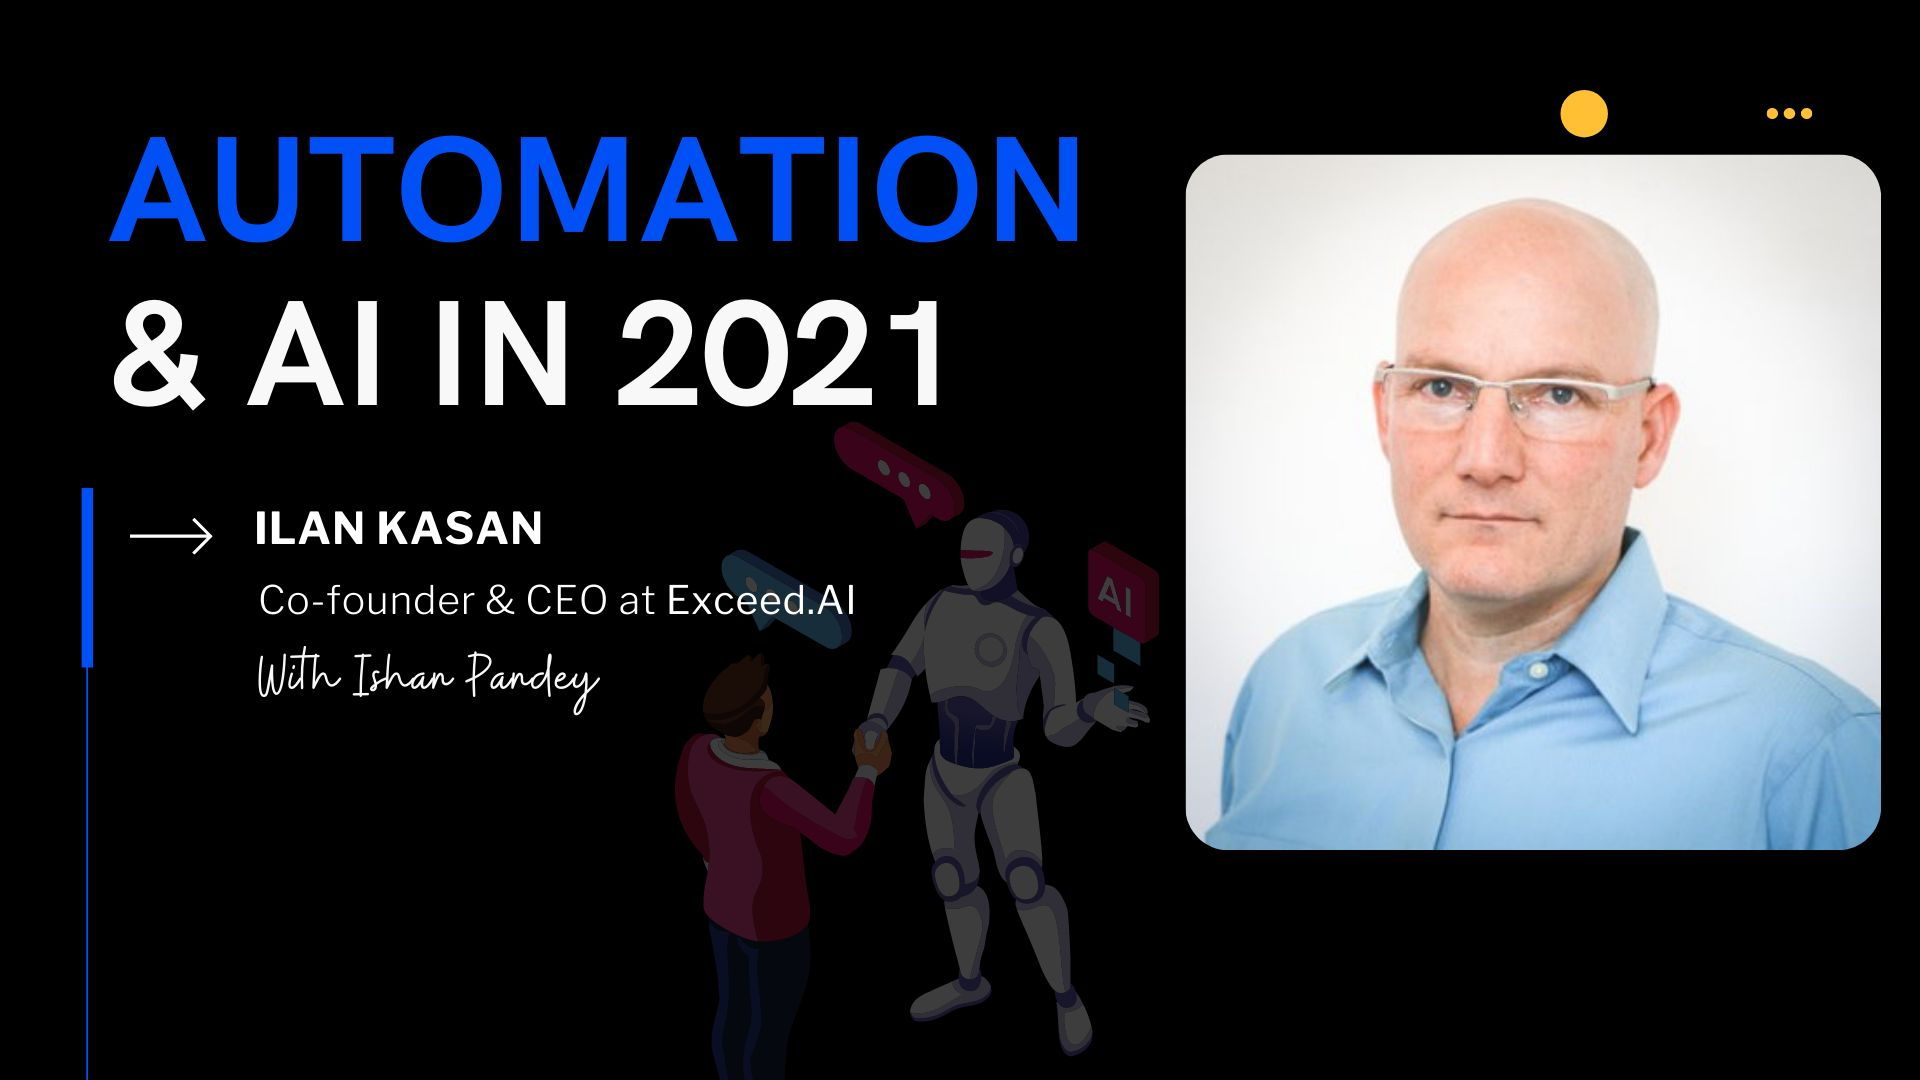 /the-robots-are-coming-an-interview-with-ilan-kasan-ceo-at-exceed-ai-3w2333t8 feature image